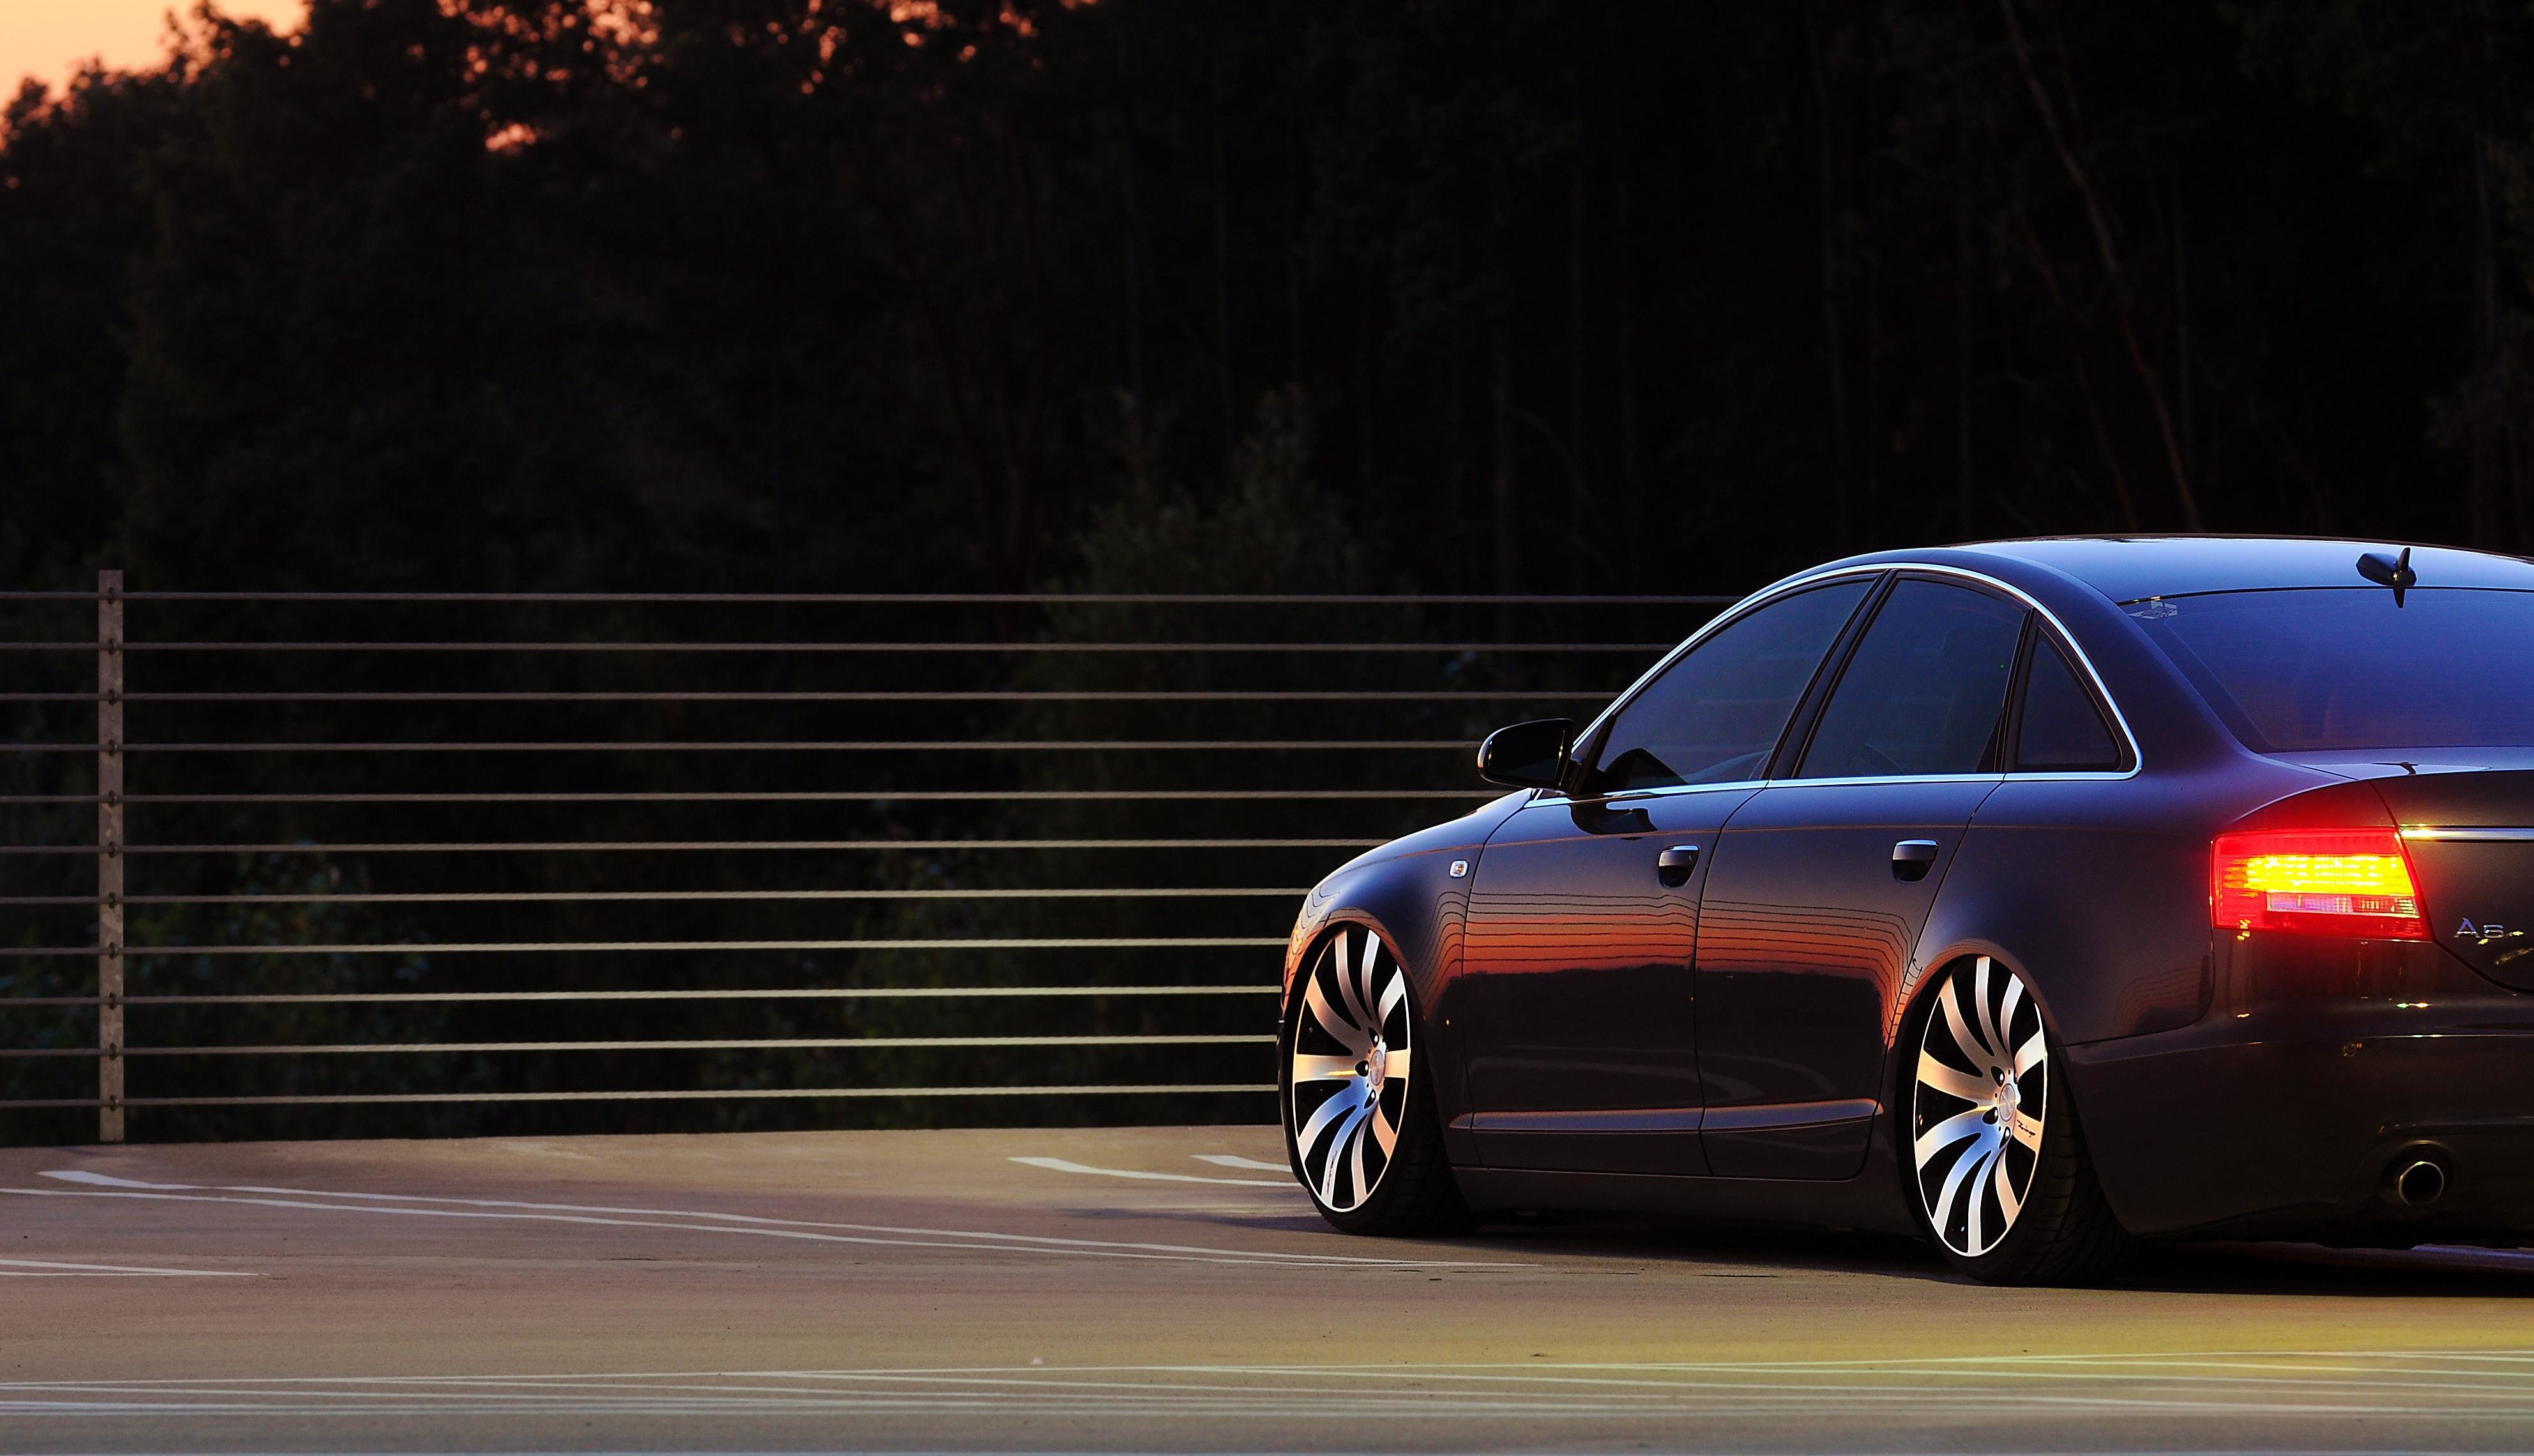 Latest Wonderful Audi A6 Wallpaper Full Hd Pictures Free Download